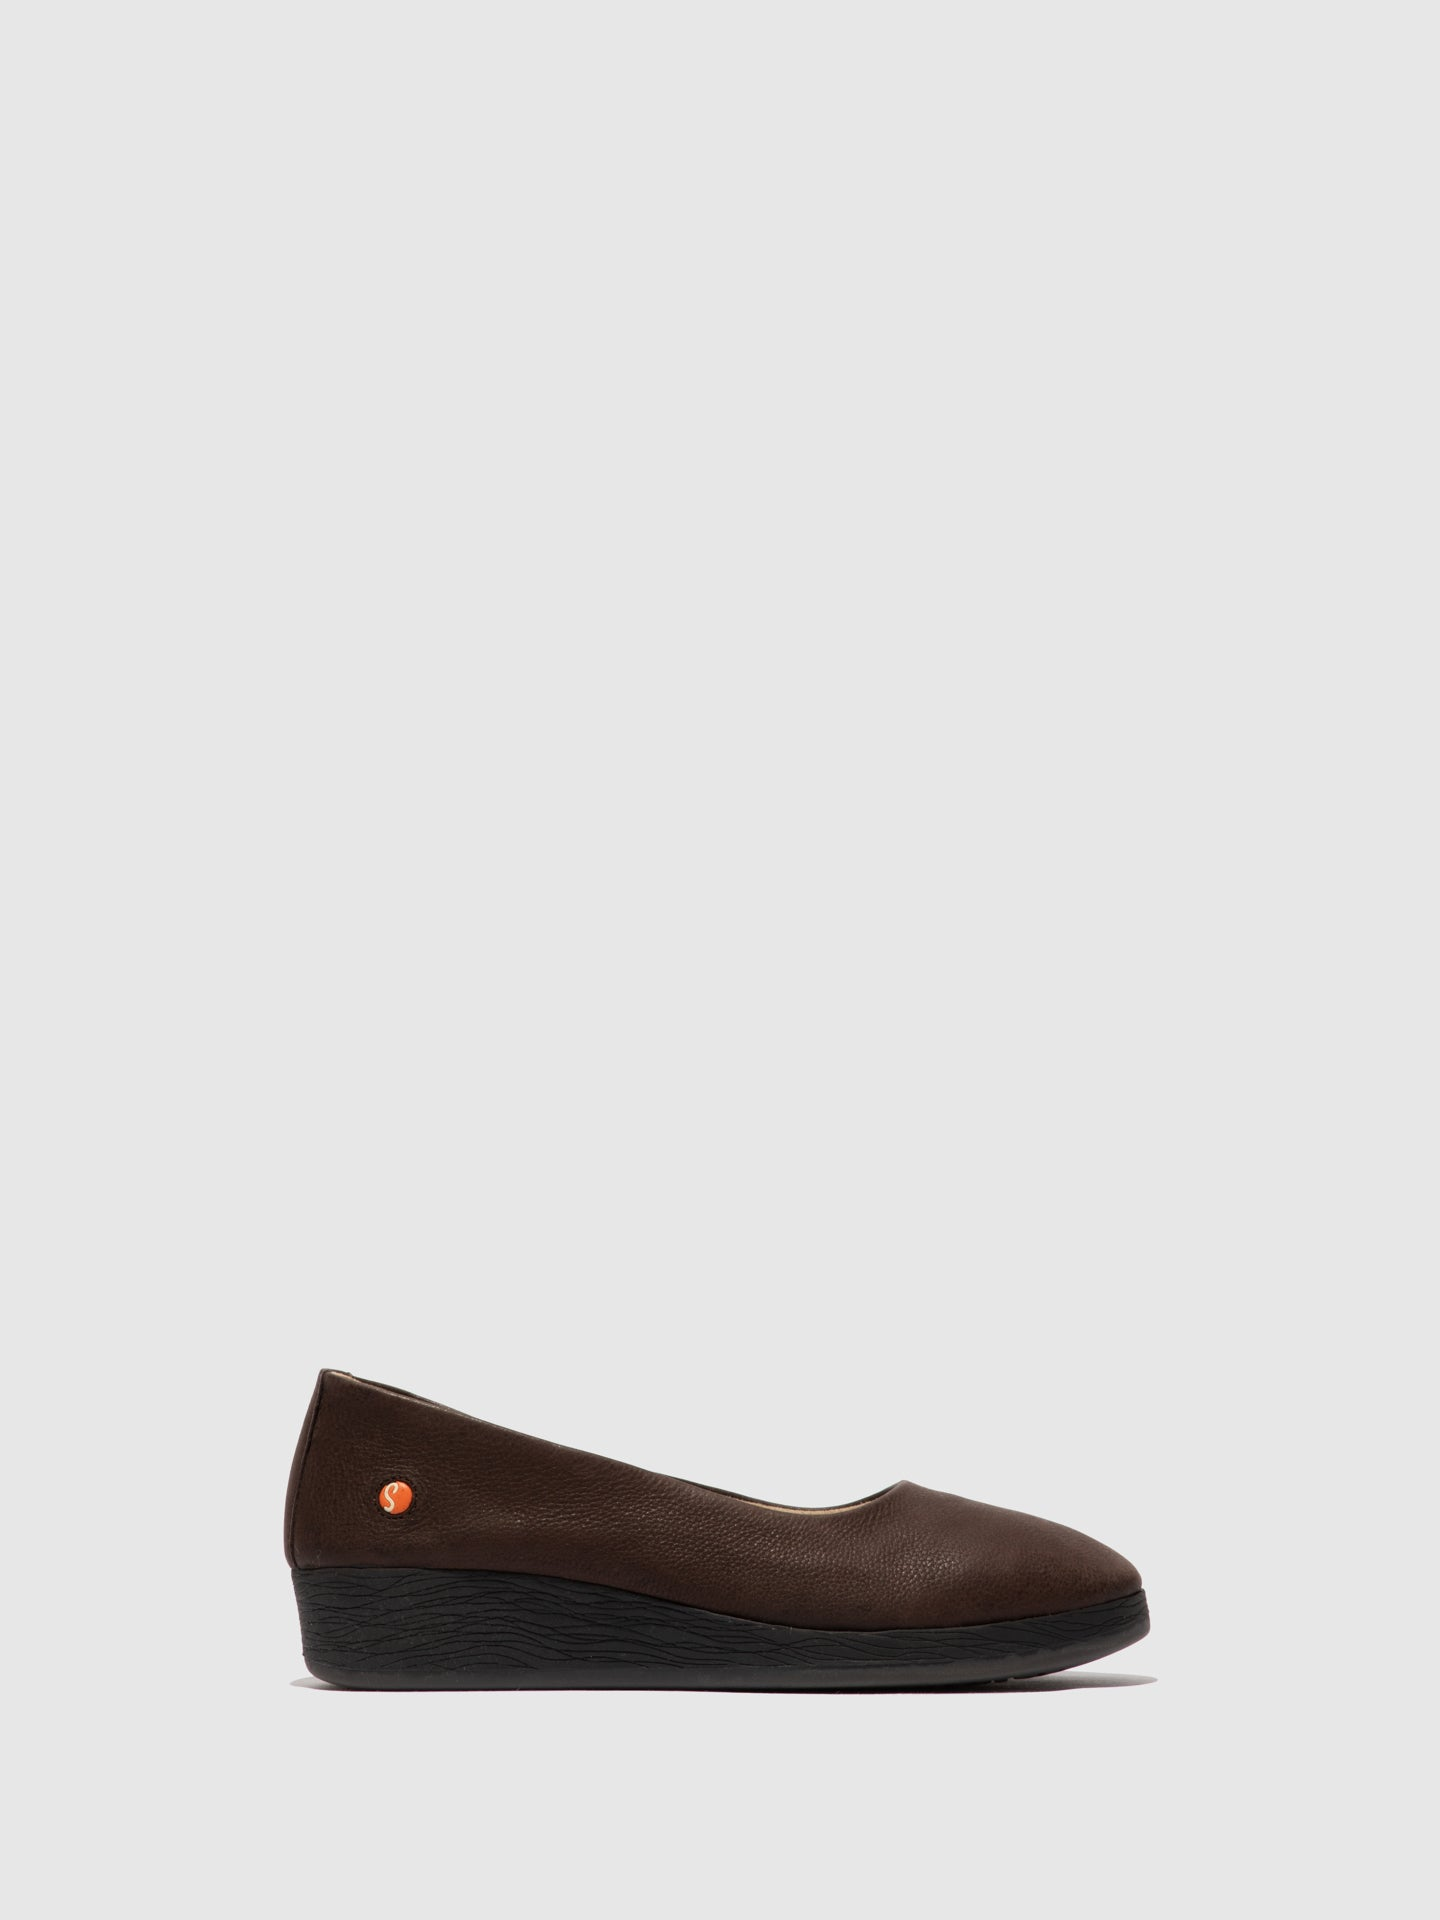 Softinos SaddleBrown Wedge Shoes